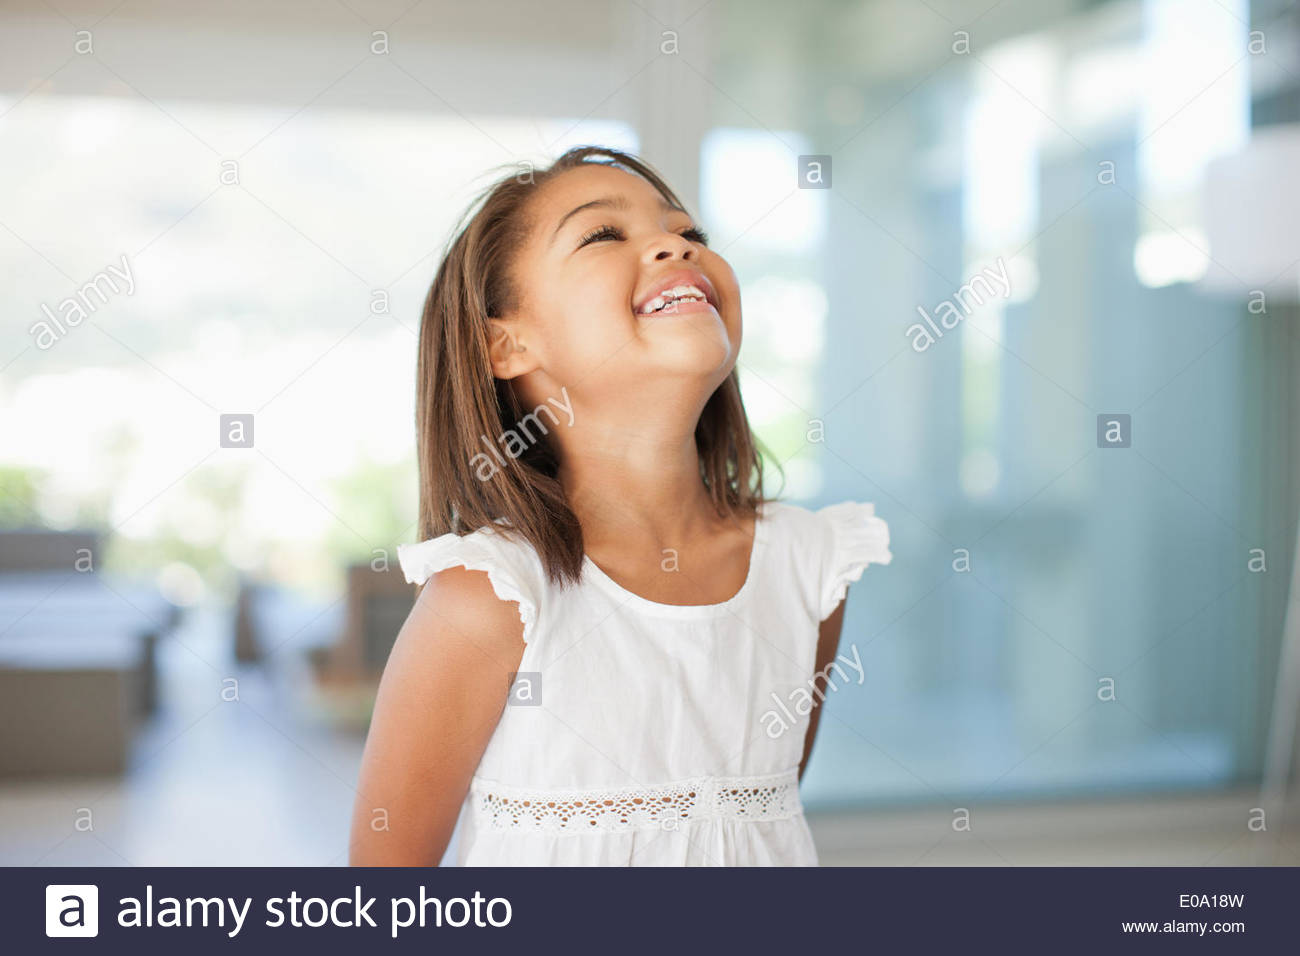 Smiling Girl standing in home - Stock Image